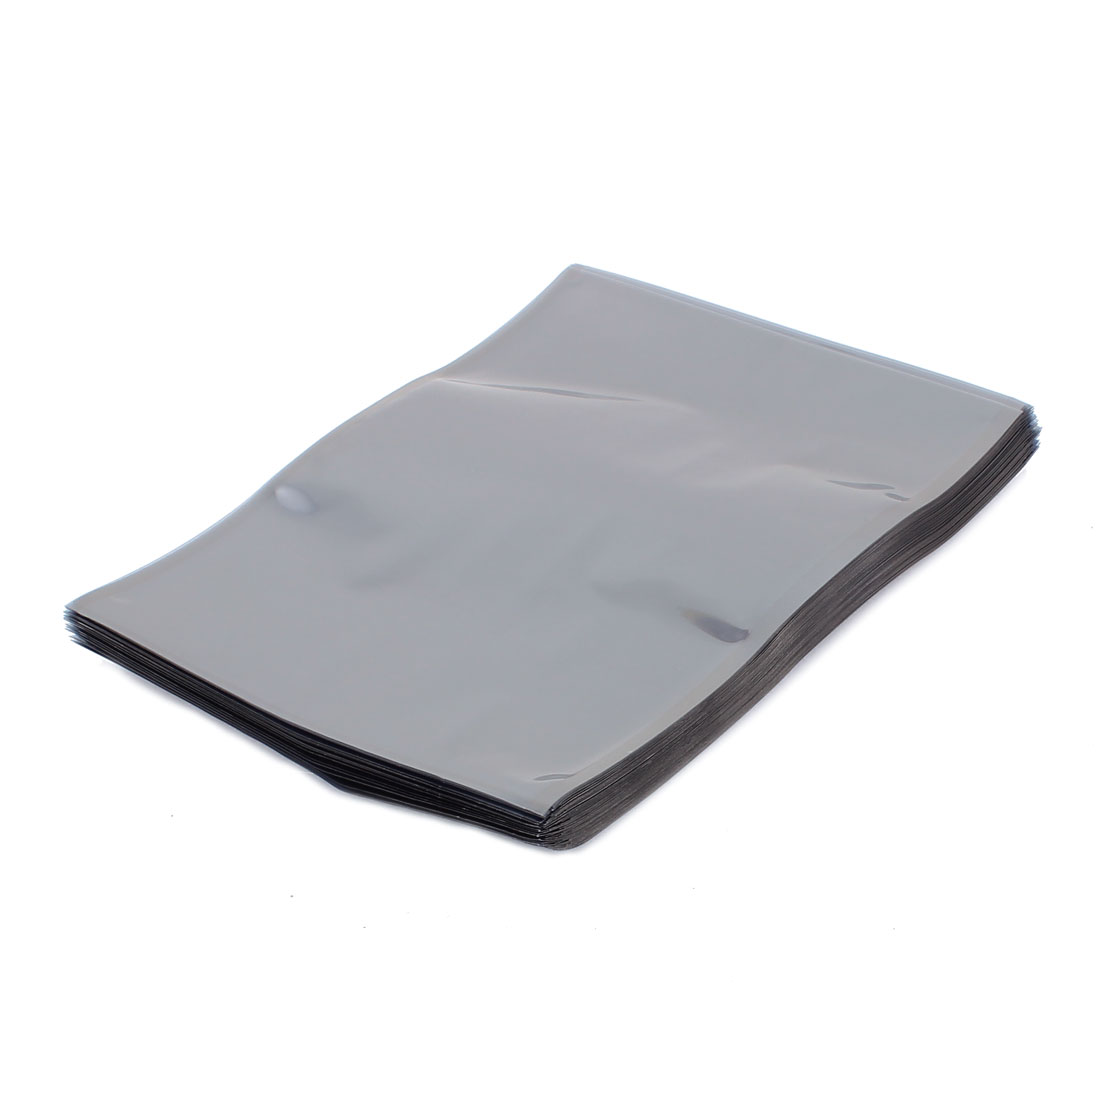 100 Pcs 160mm x 200mm Silver Tone Flat Open Top Anti Static Bag For Electronics